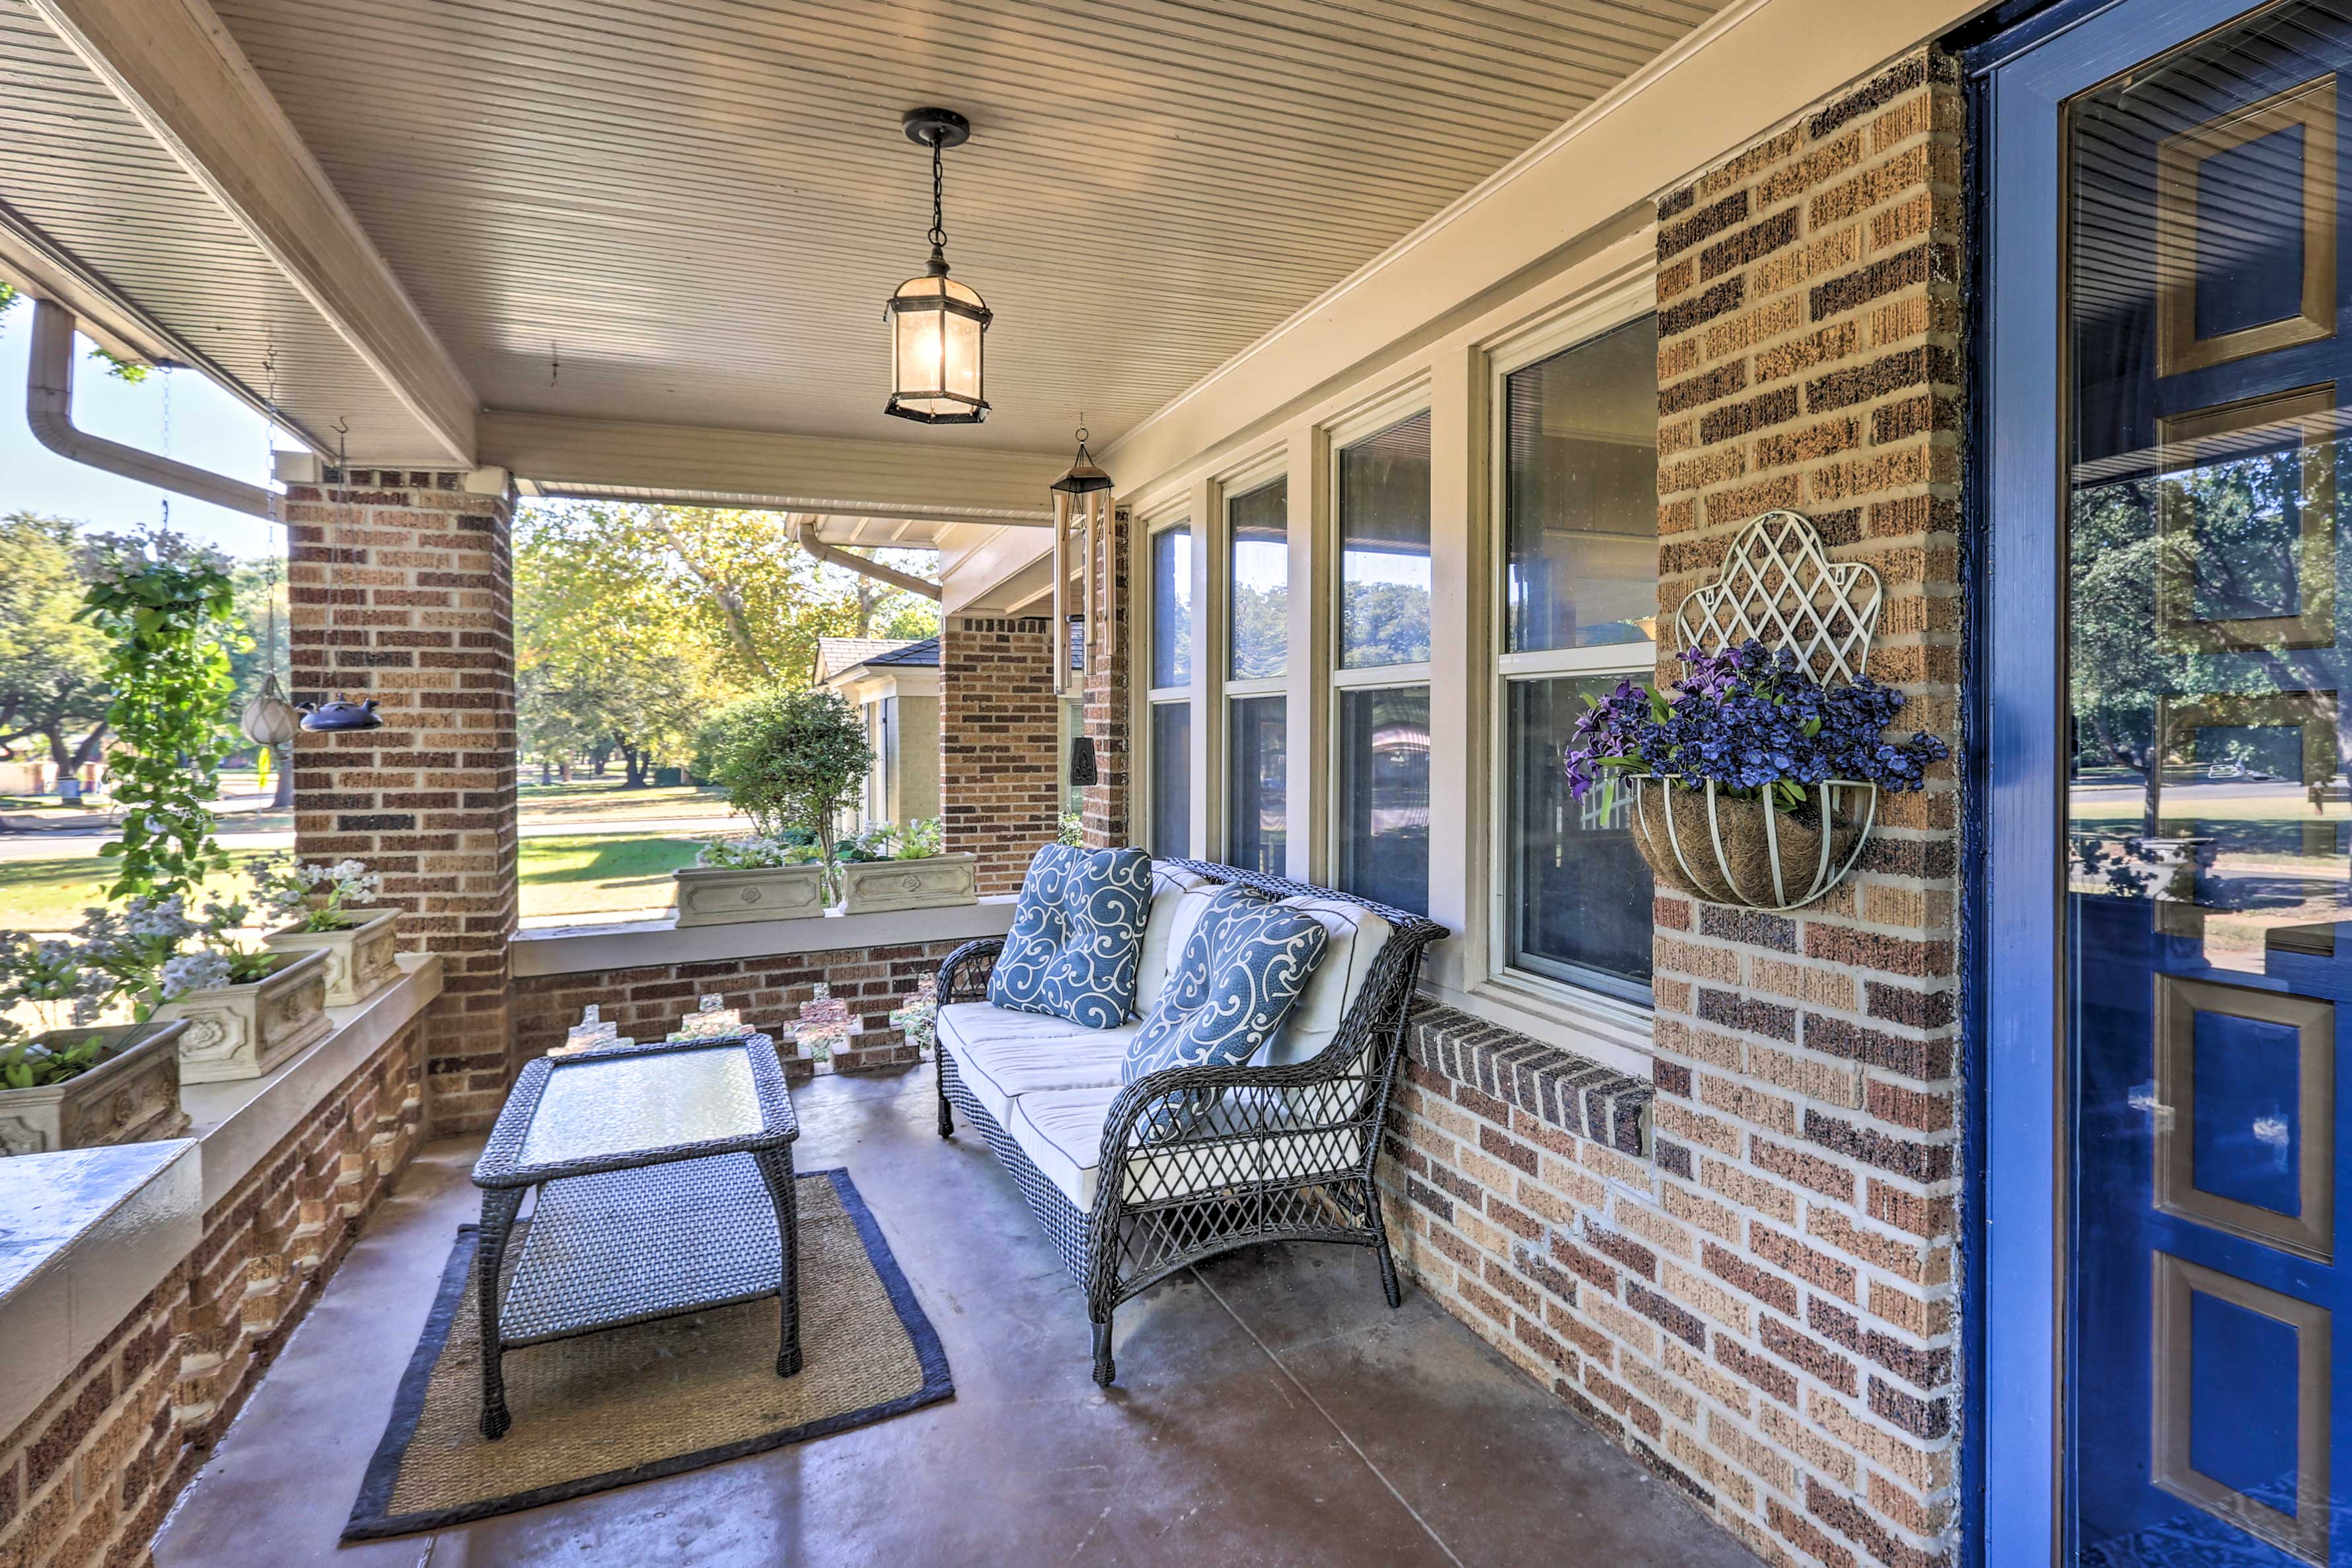 Enjoy a glass of wine out on the front porch!